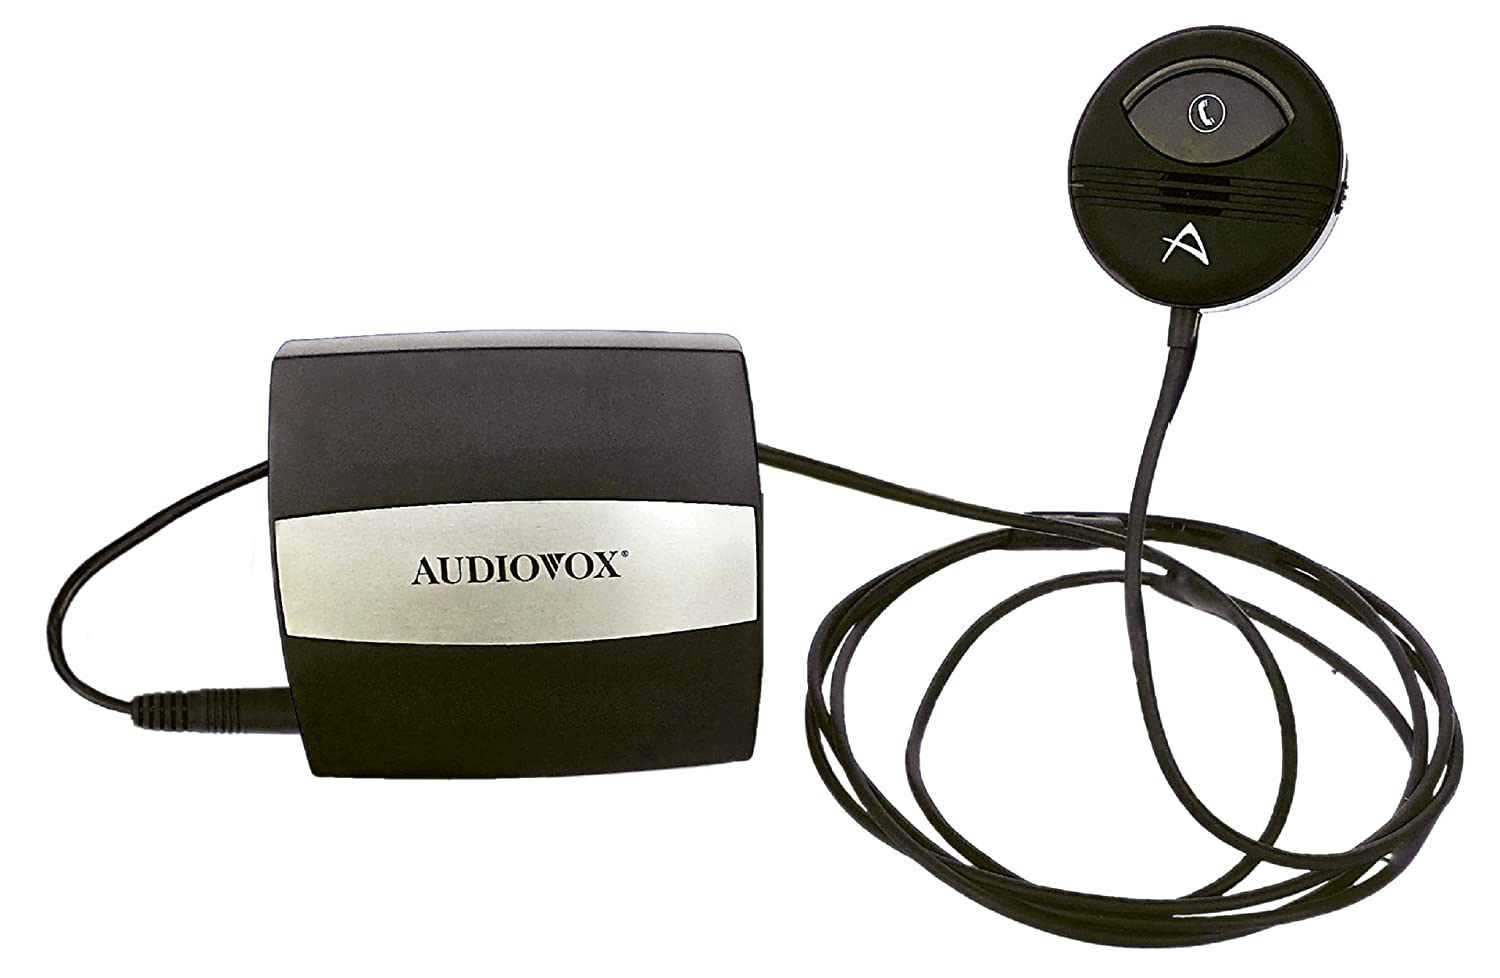 and Sirius XM Audiovox BT101HON Honda CarStream with Bluetooth 4.0 for Hands-Free Calling Music Steaming